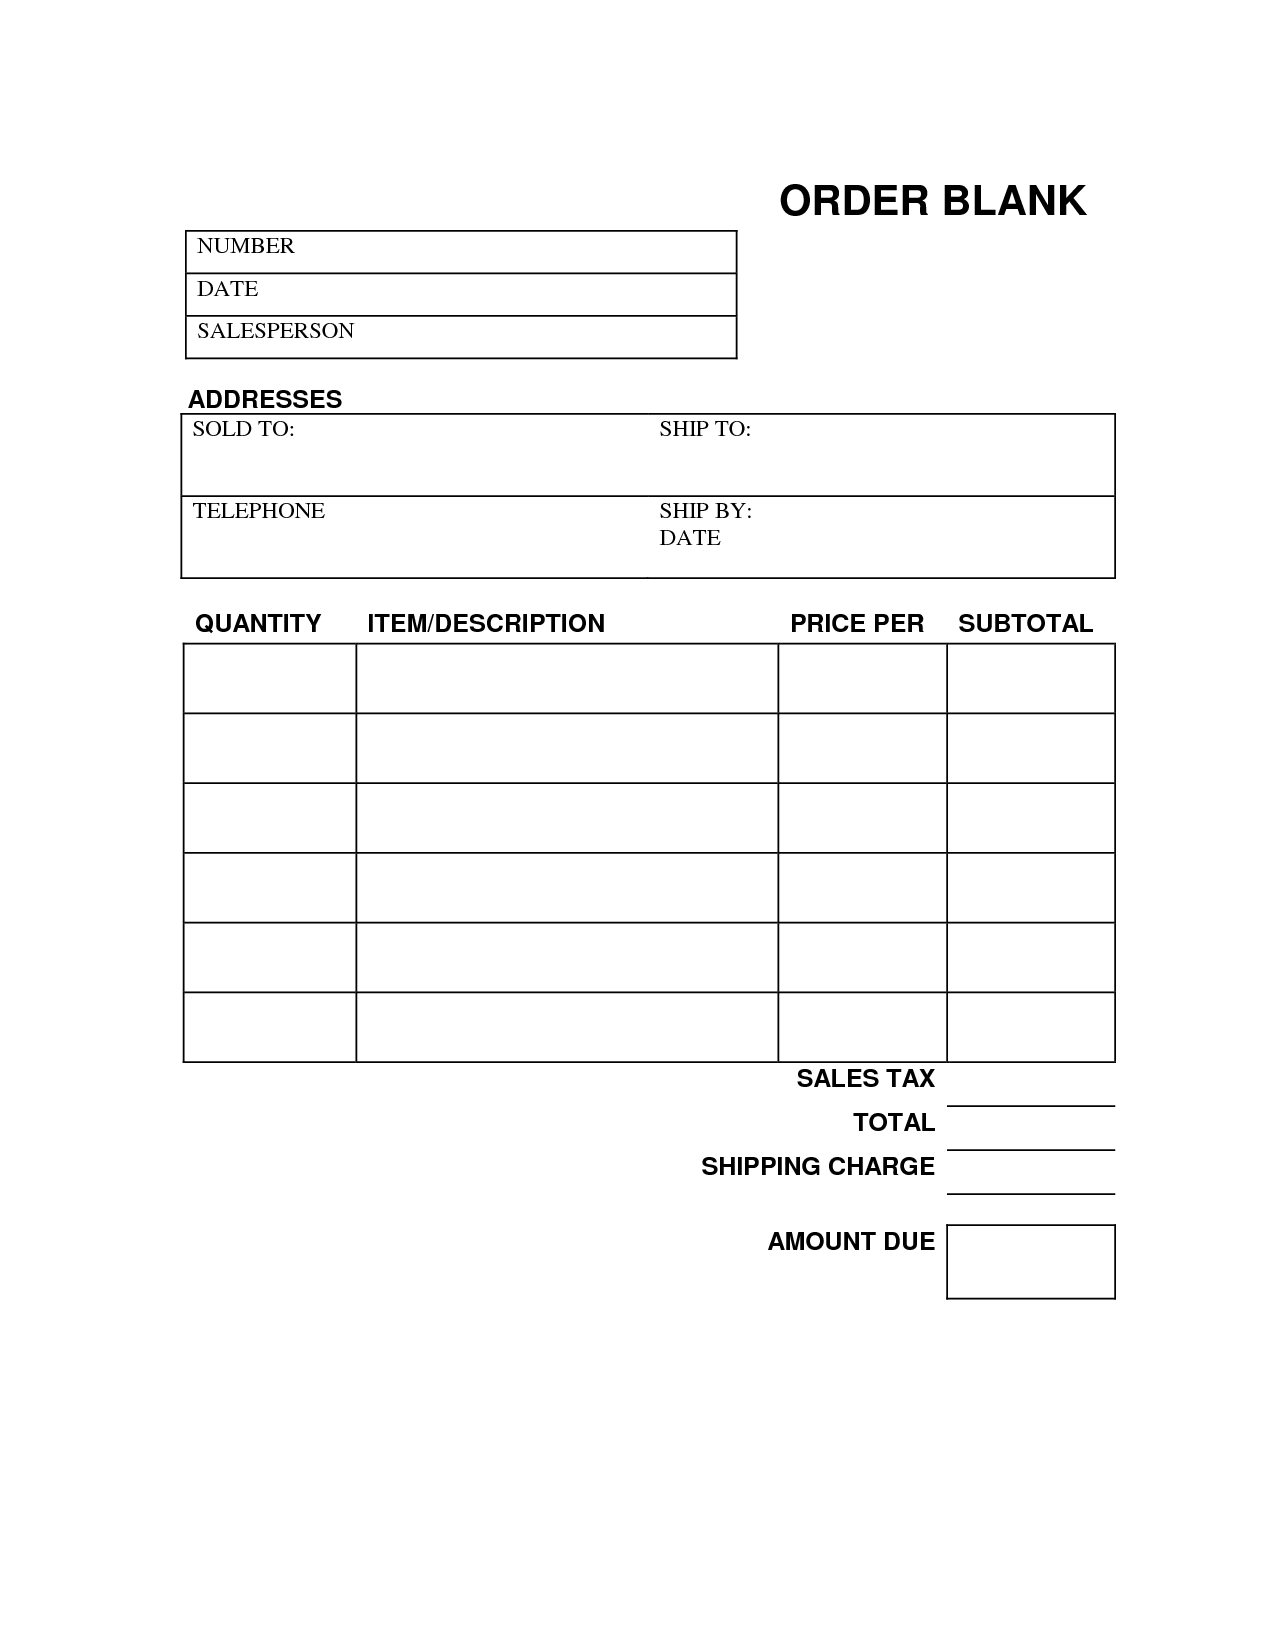 Blank Work Order Form | charlotte clergy coalition